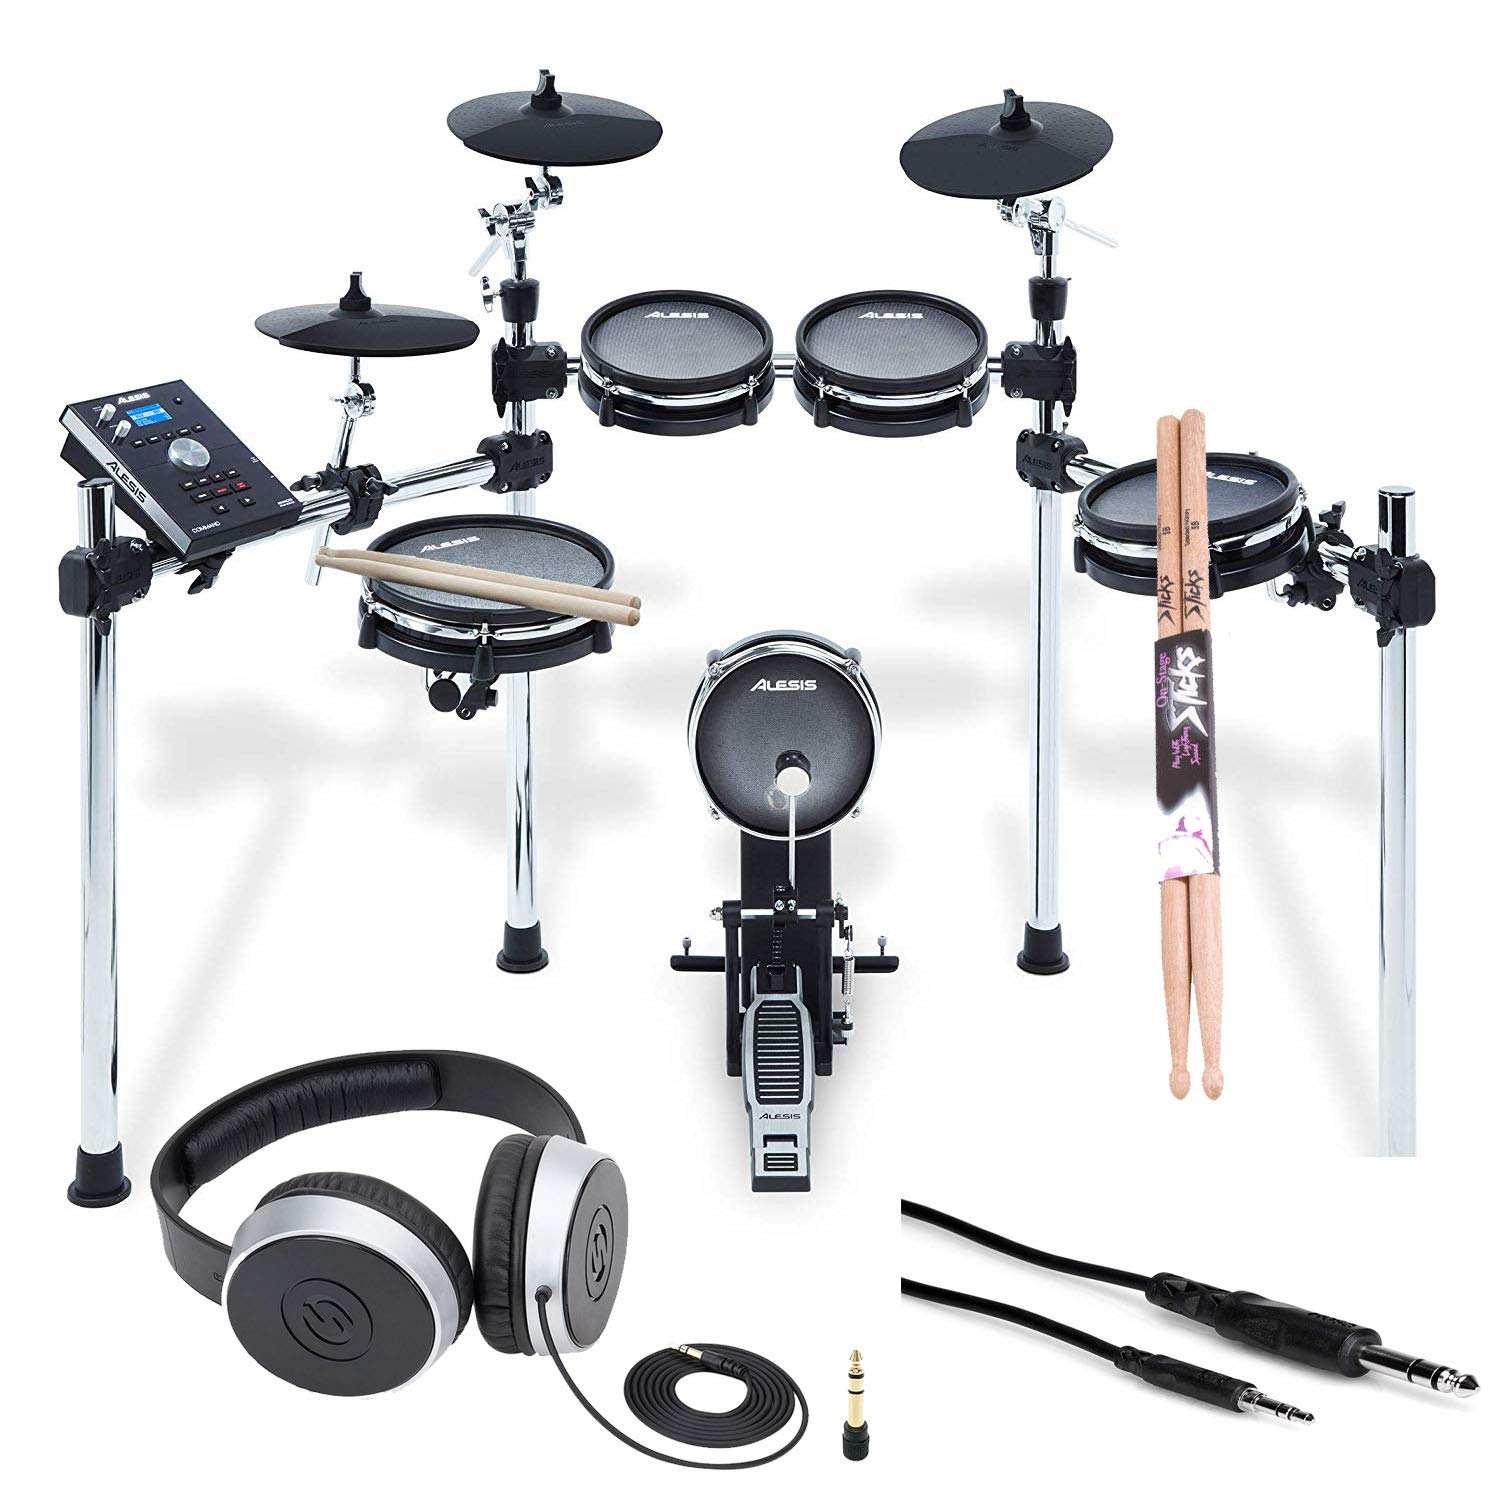 Alesis COMMAND MESH KIT Eight-Piece Electronic Drum Kit with Pair of Drumsticks + Samson SR550 Studio Headphones + Hosa 3.5 mm Interconnect Cable, 10 feet - Deluxe Accessory Bundle by Alesis (Image #1)